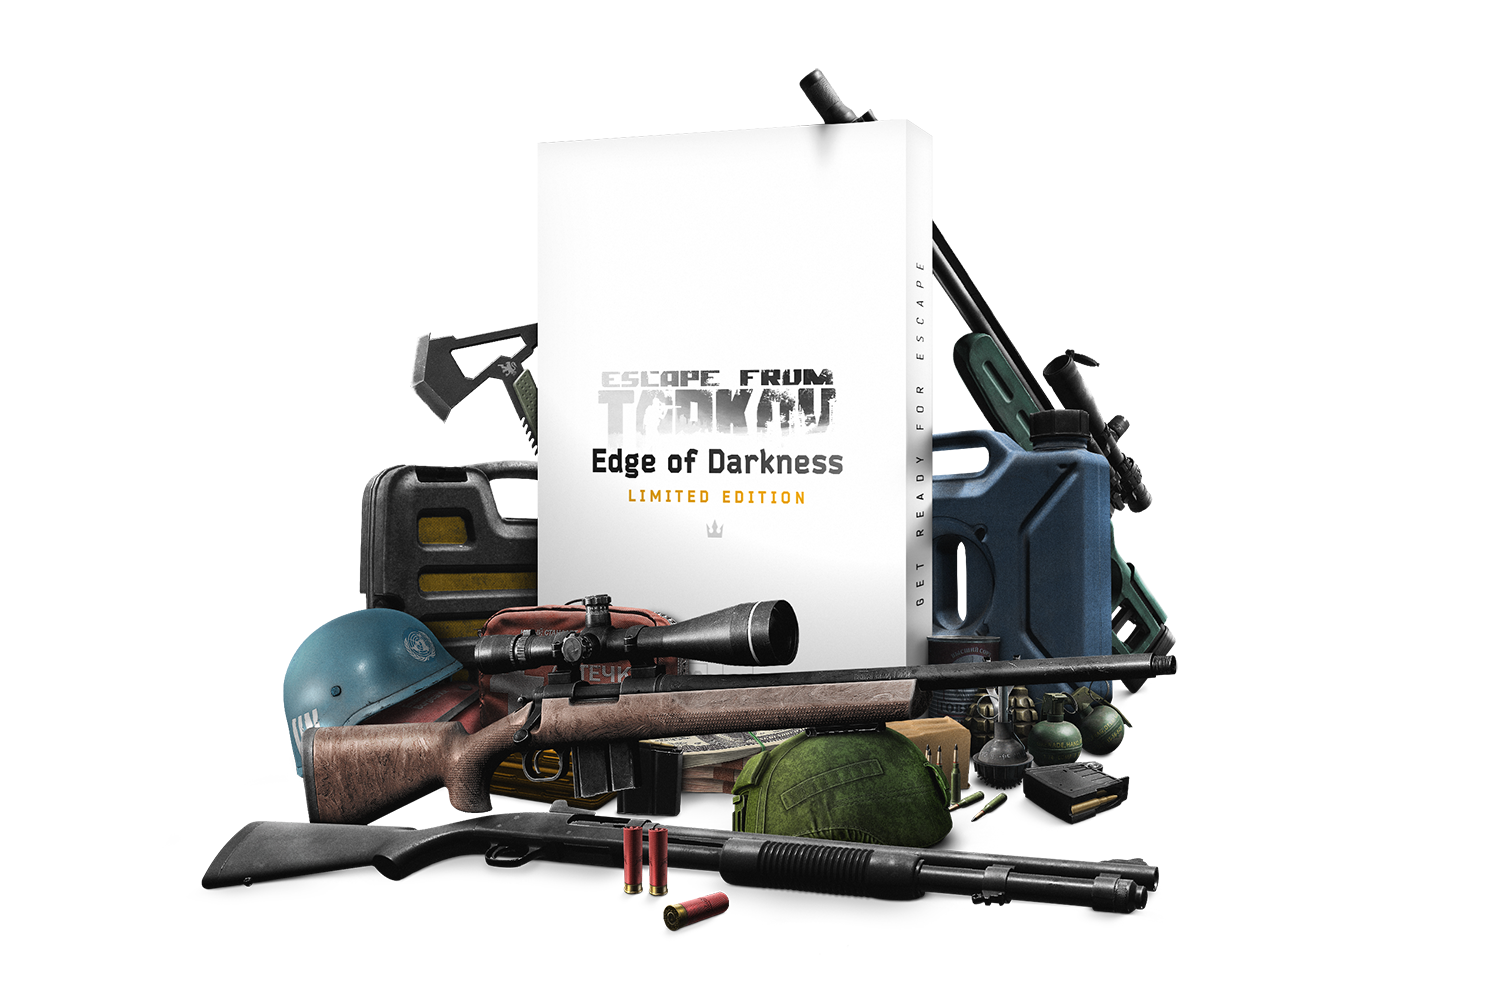 Edge of Darkness Limited Edition